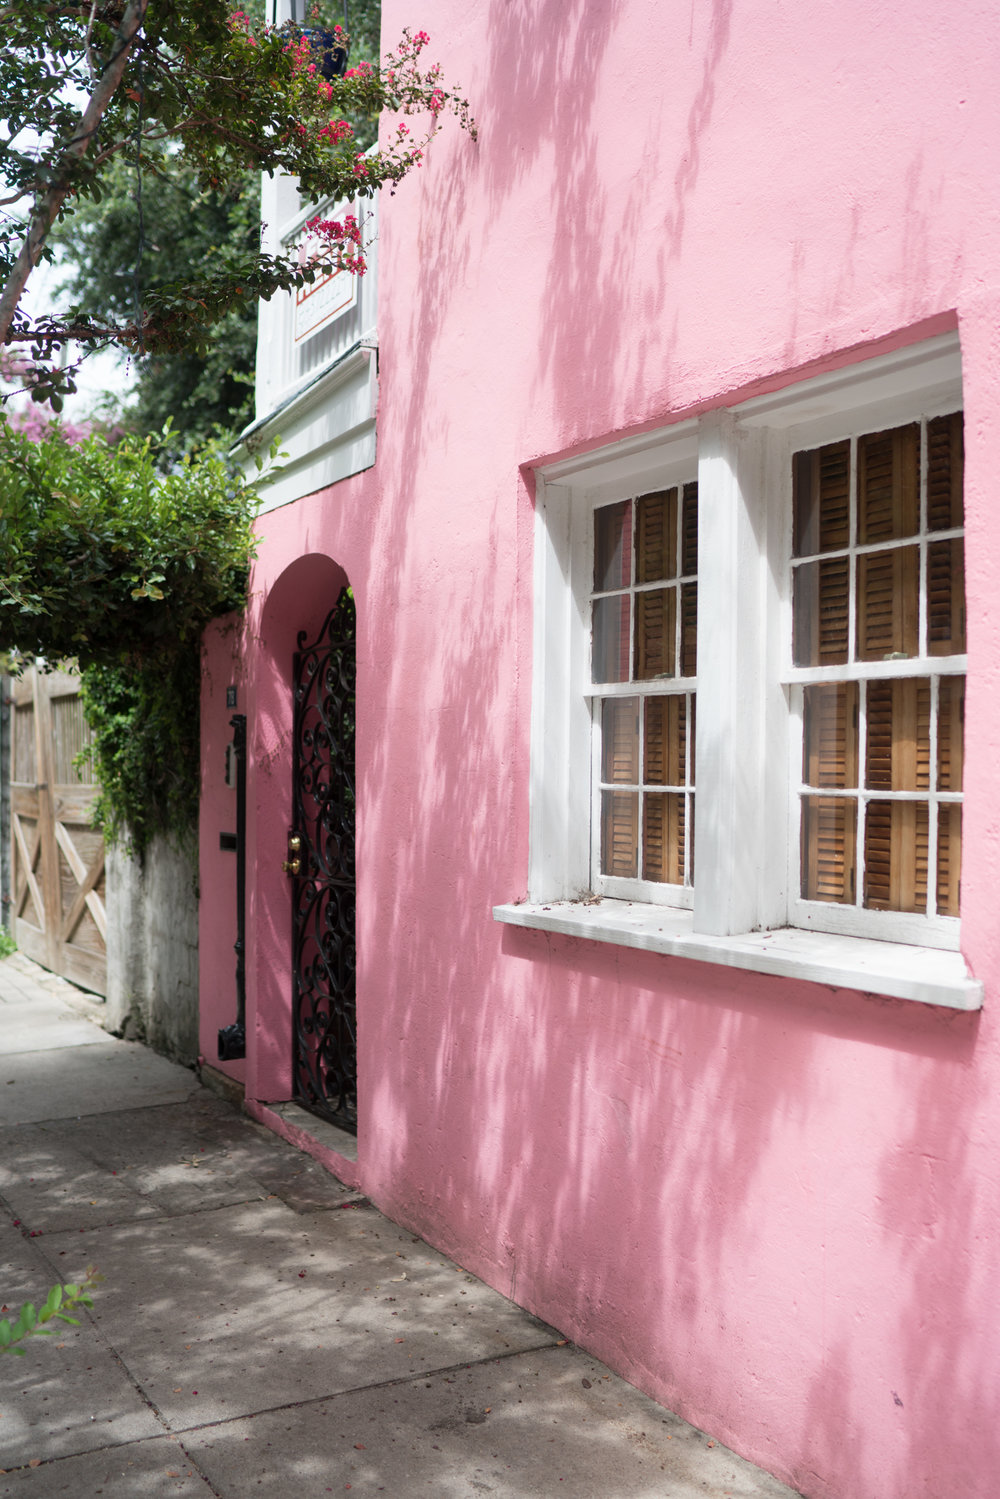 Charleston is so pretty in pink